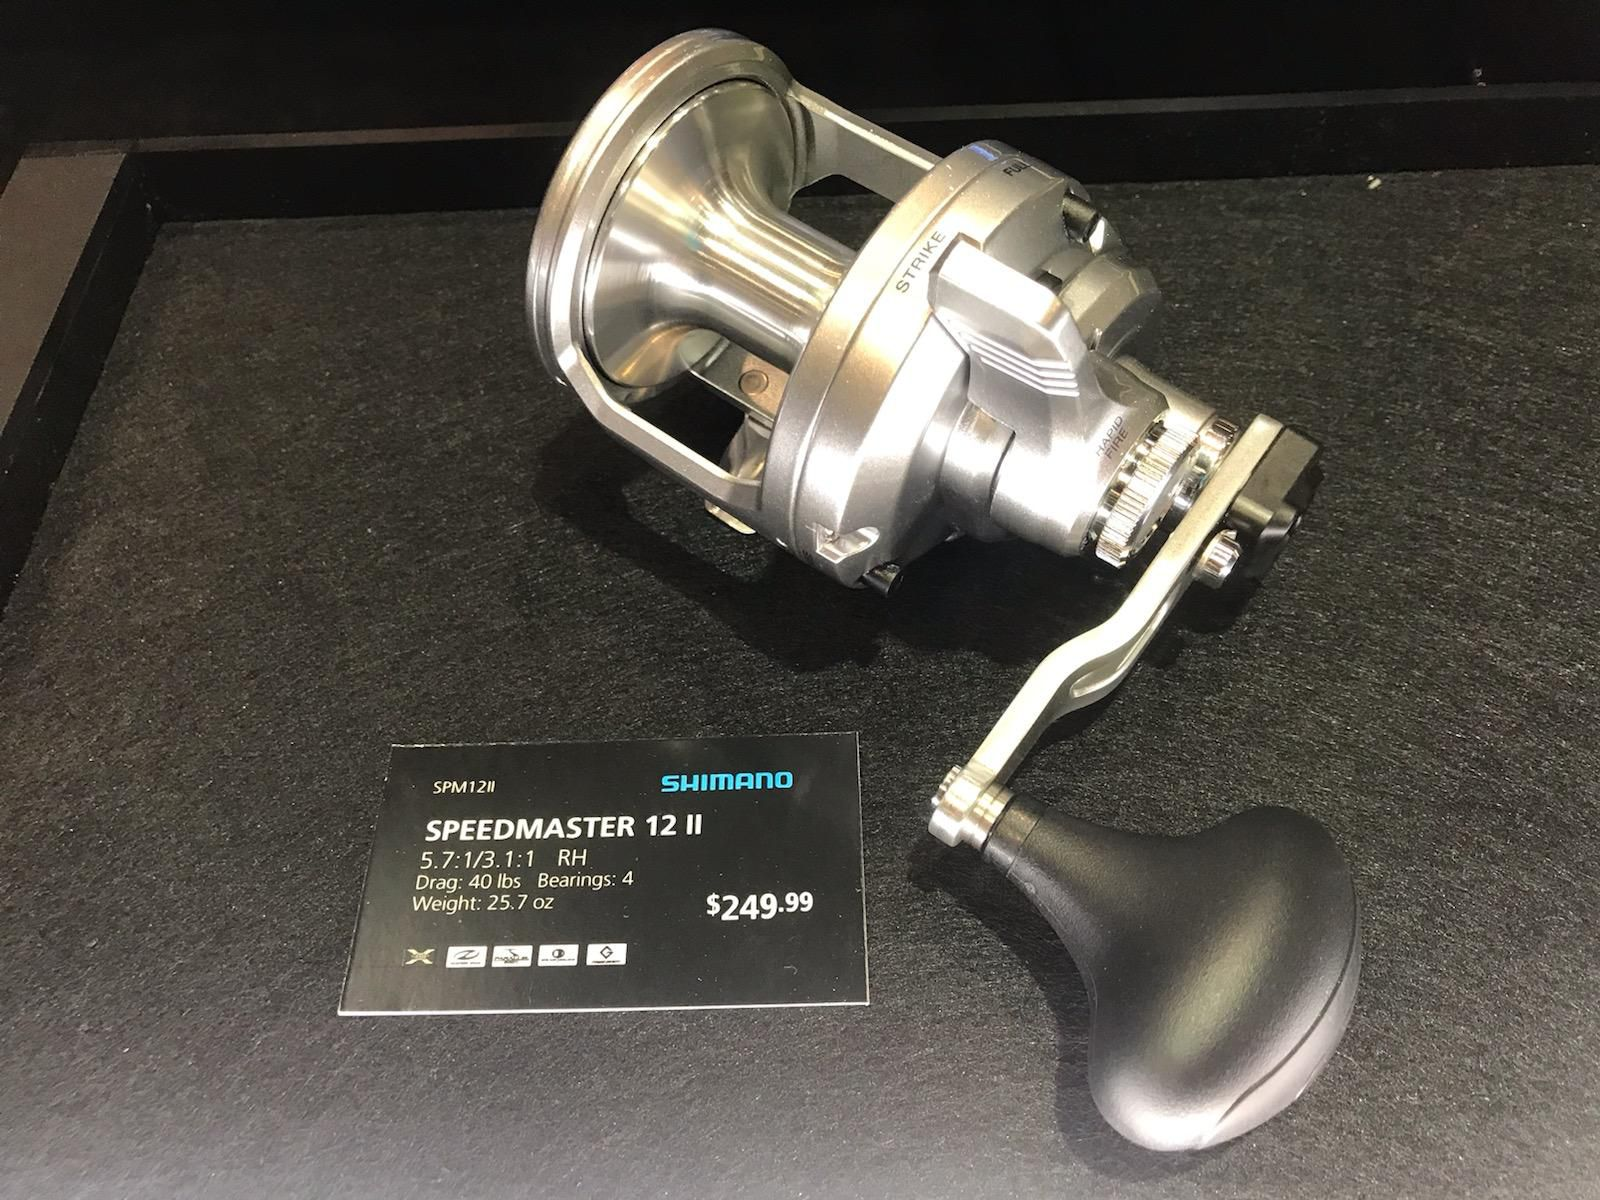 Shimano's new Speedmaster reel will be available in 2 sizes: 12 and 16 class, featuring 2 speeds and lever drag with 40 pounds of stopping power.